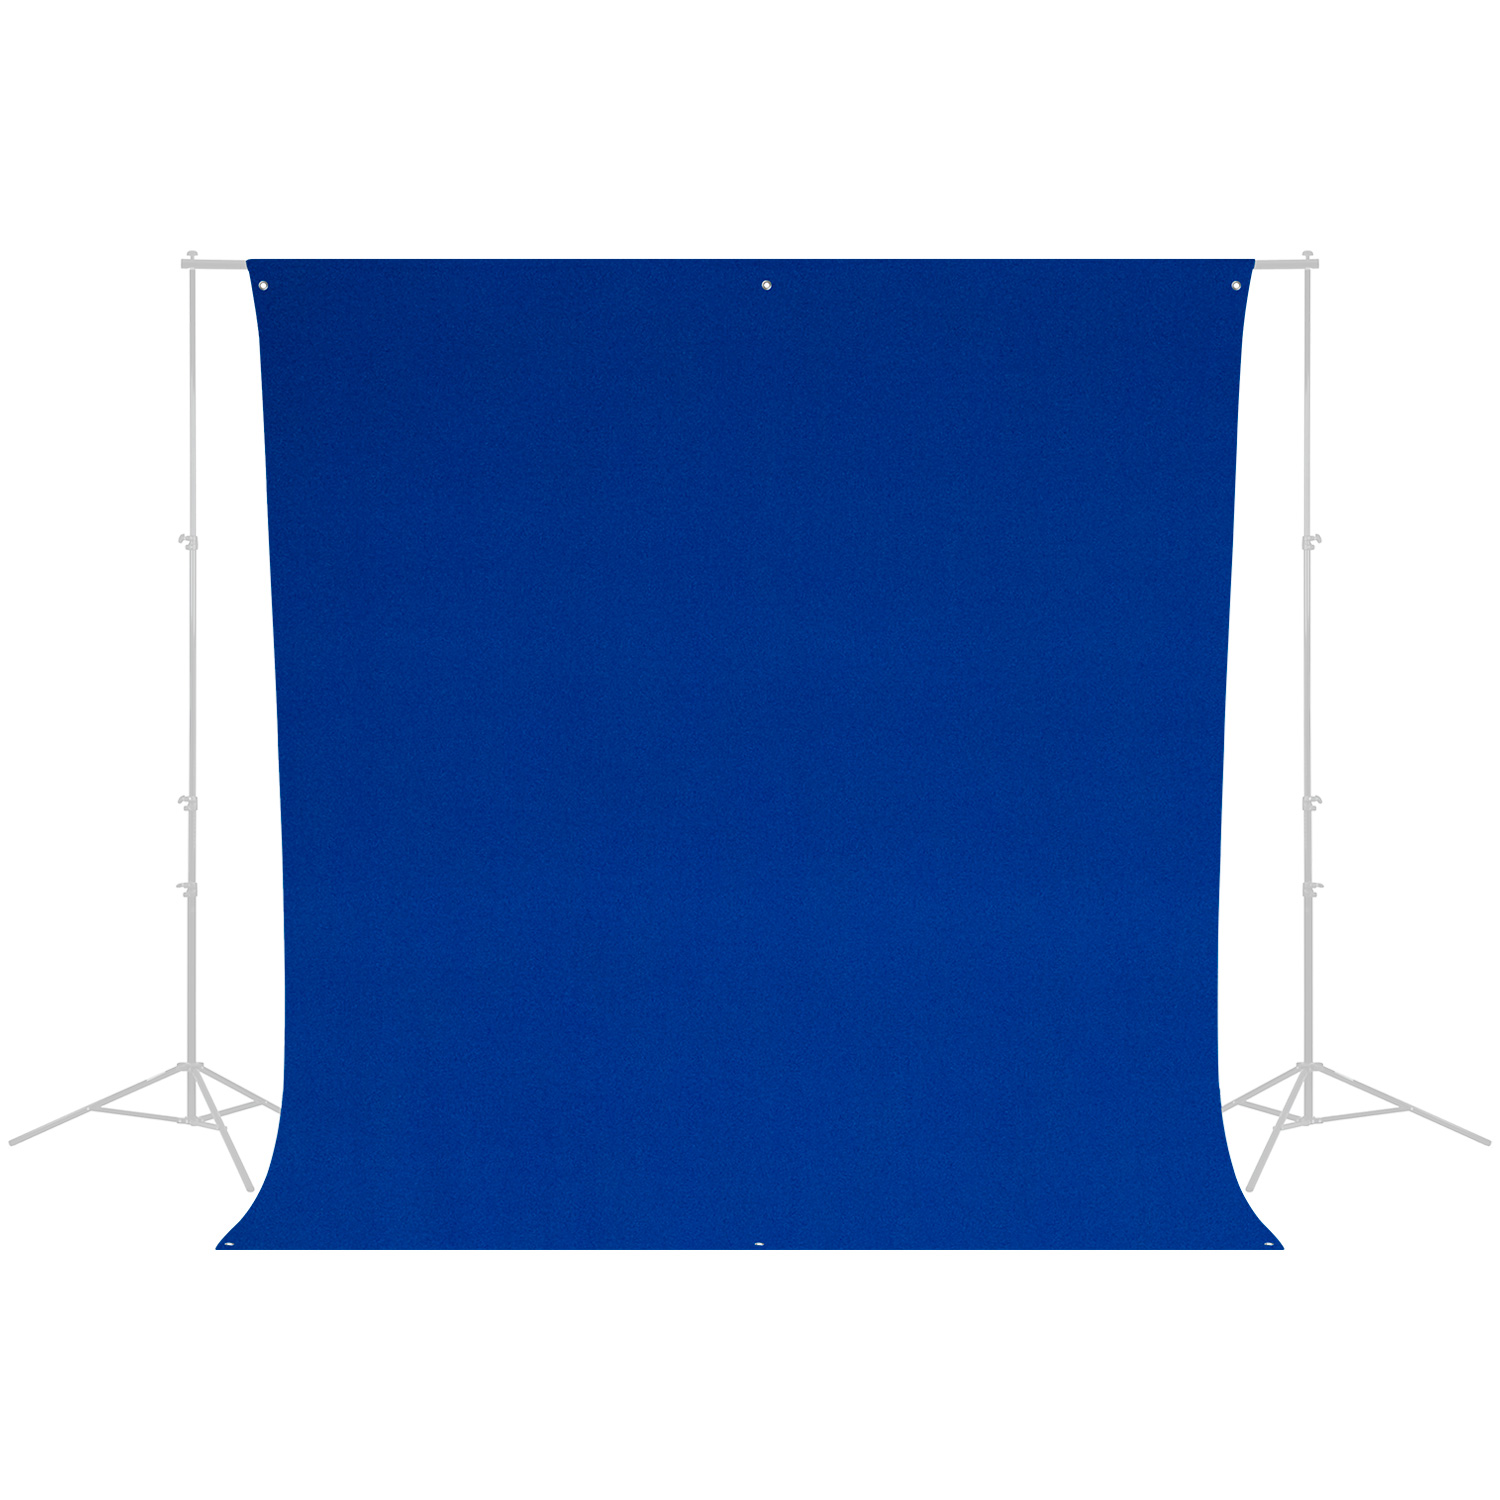 Wrinkle-Resistant Backdrop - Chroma-Key Blue Screen (9' x 10')